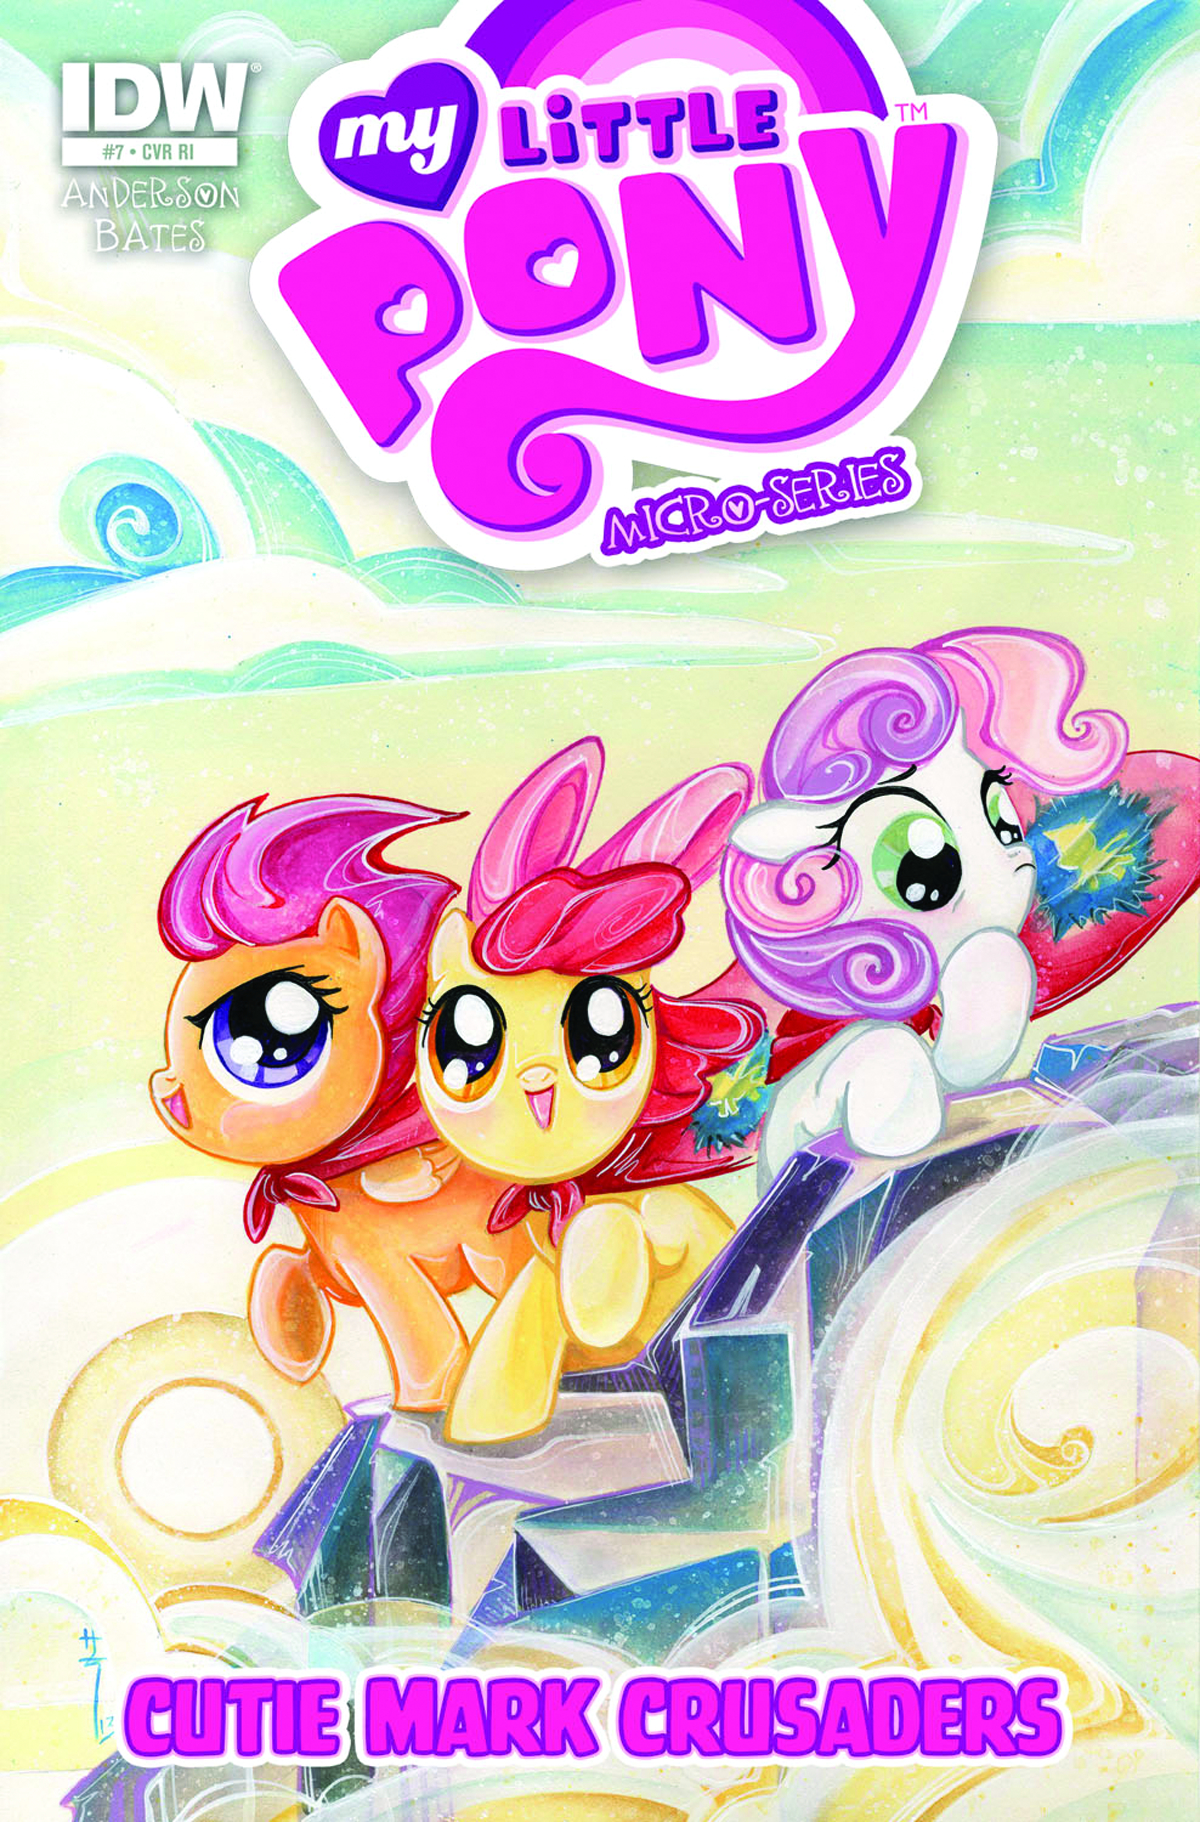 MY LITTLE PONY MICRO SERIES #7 CUTIE MARK CRUSADERS